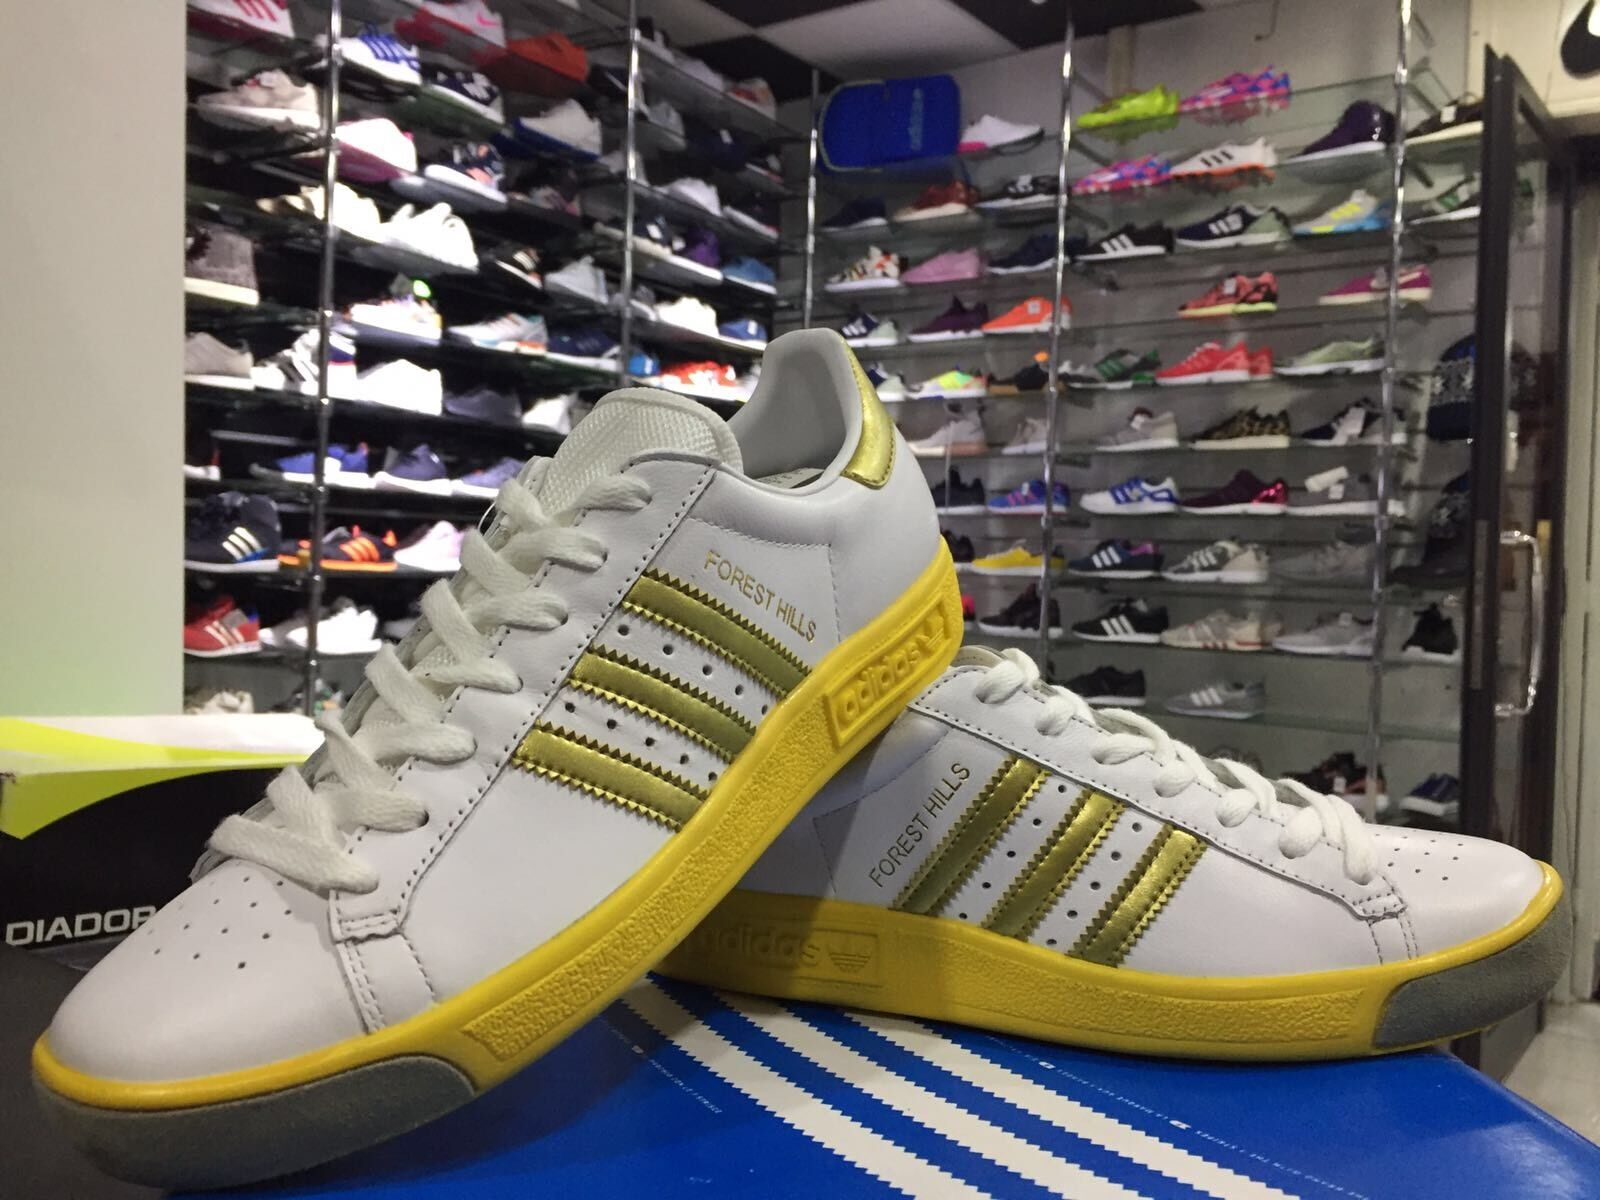 chaussures N. 39 1 3 UK 6 CM 24.5 ADIDAS FOREST HILLS  baskets COL.BIANCO   or